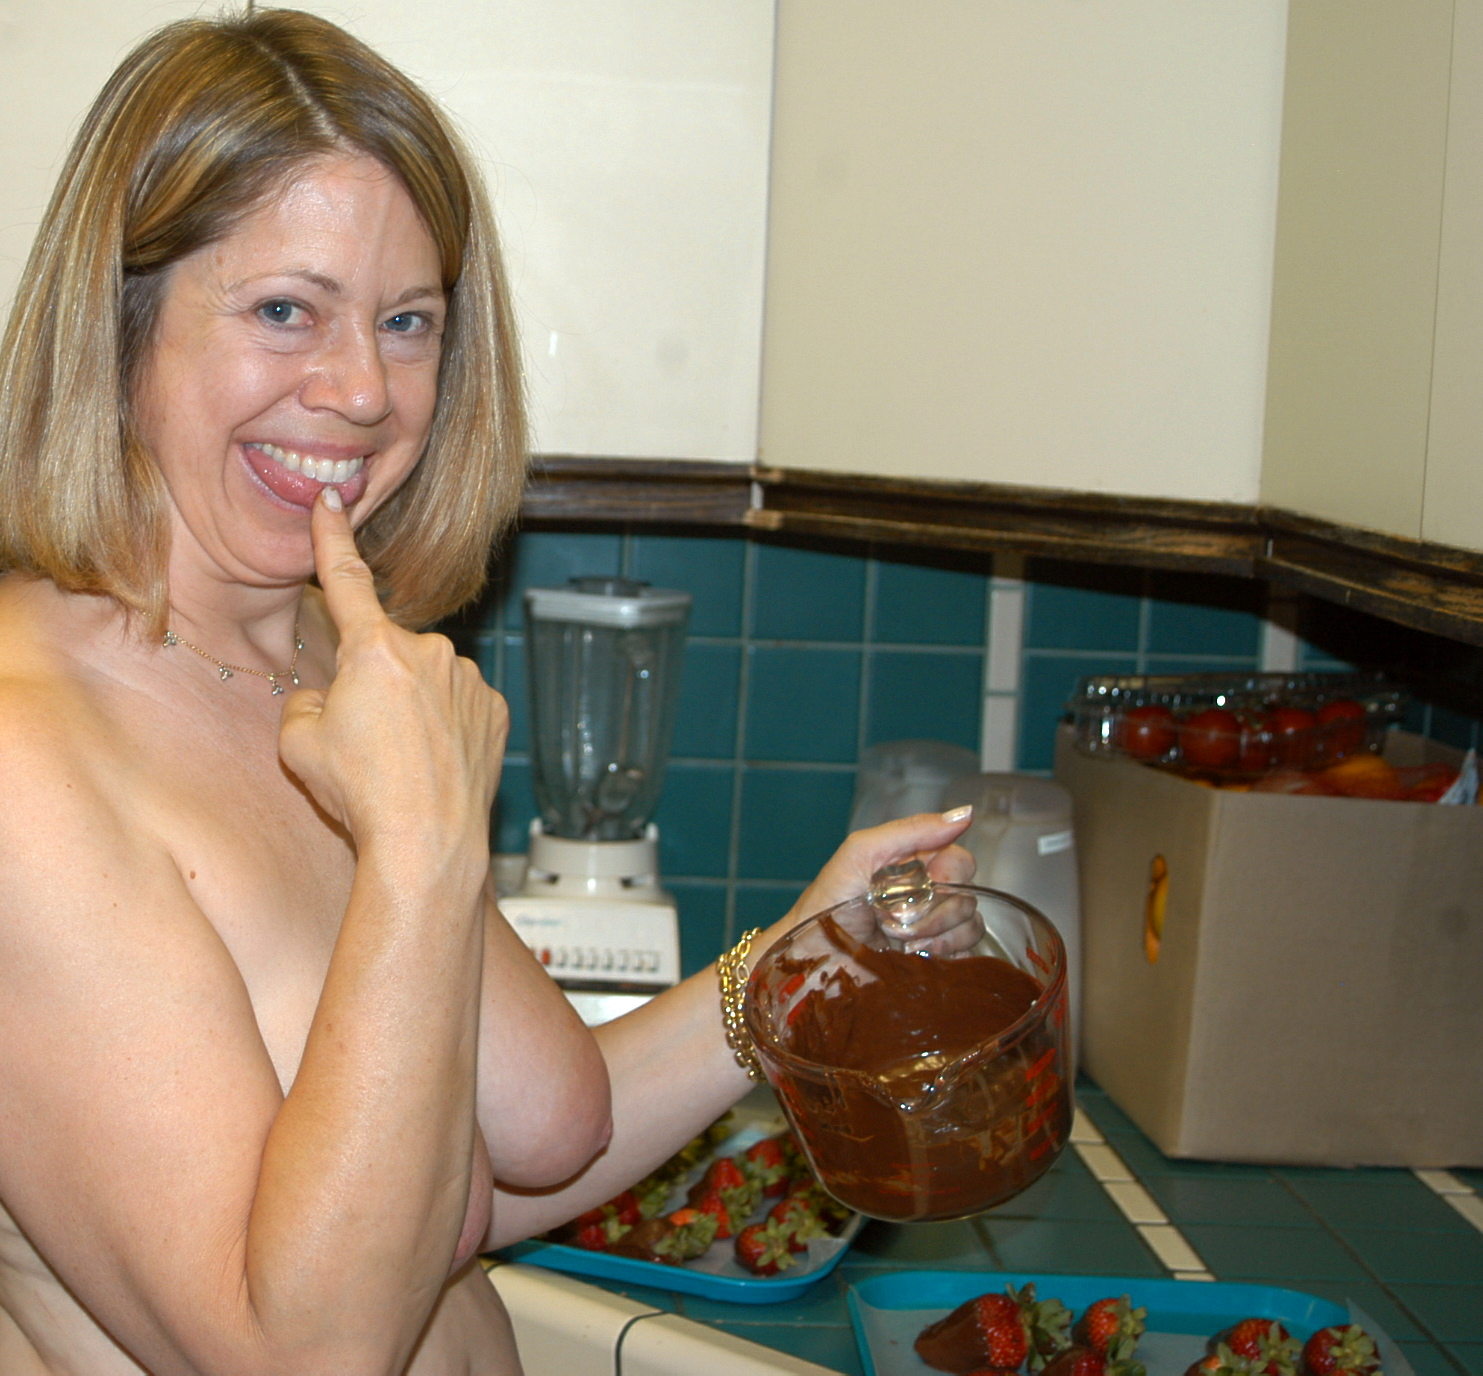 Chocolate%252Bcovered%252Bstrawberries%252B025 Sexy blondes in the bathroom